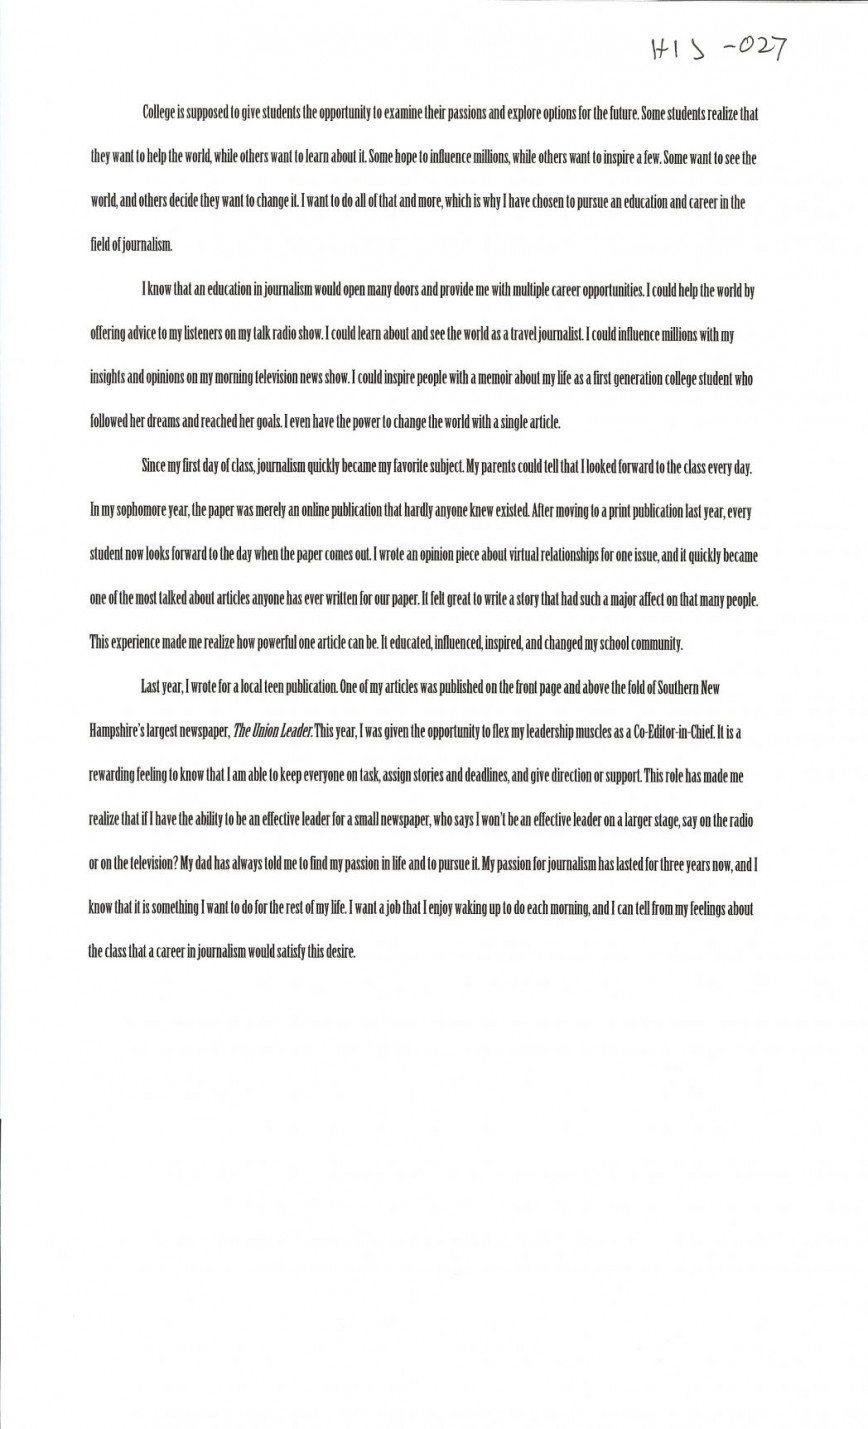 008 Word Essay Writing Definition Sample Scholarship Essays Words Alexa Serrecchia 1048x1726 Awful For High School Seniors 500 868